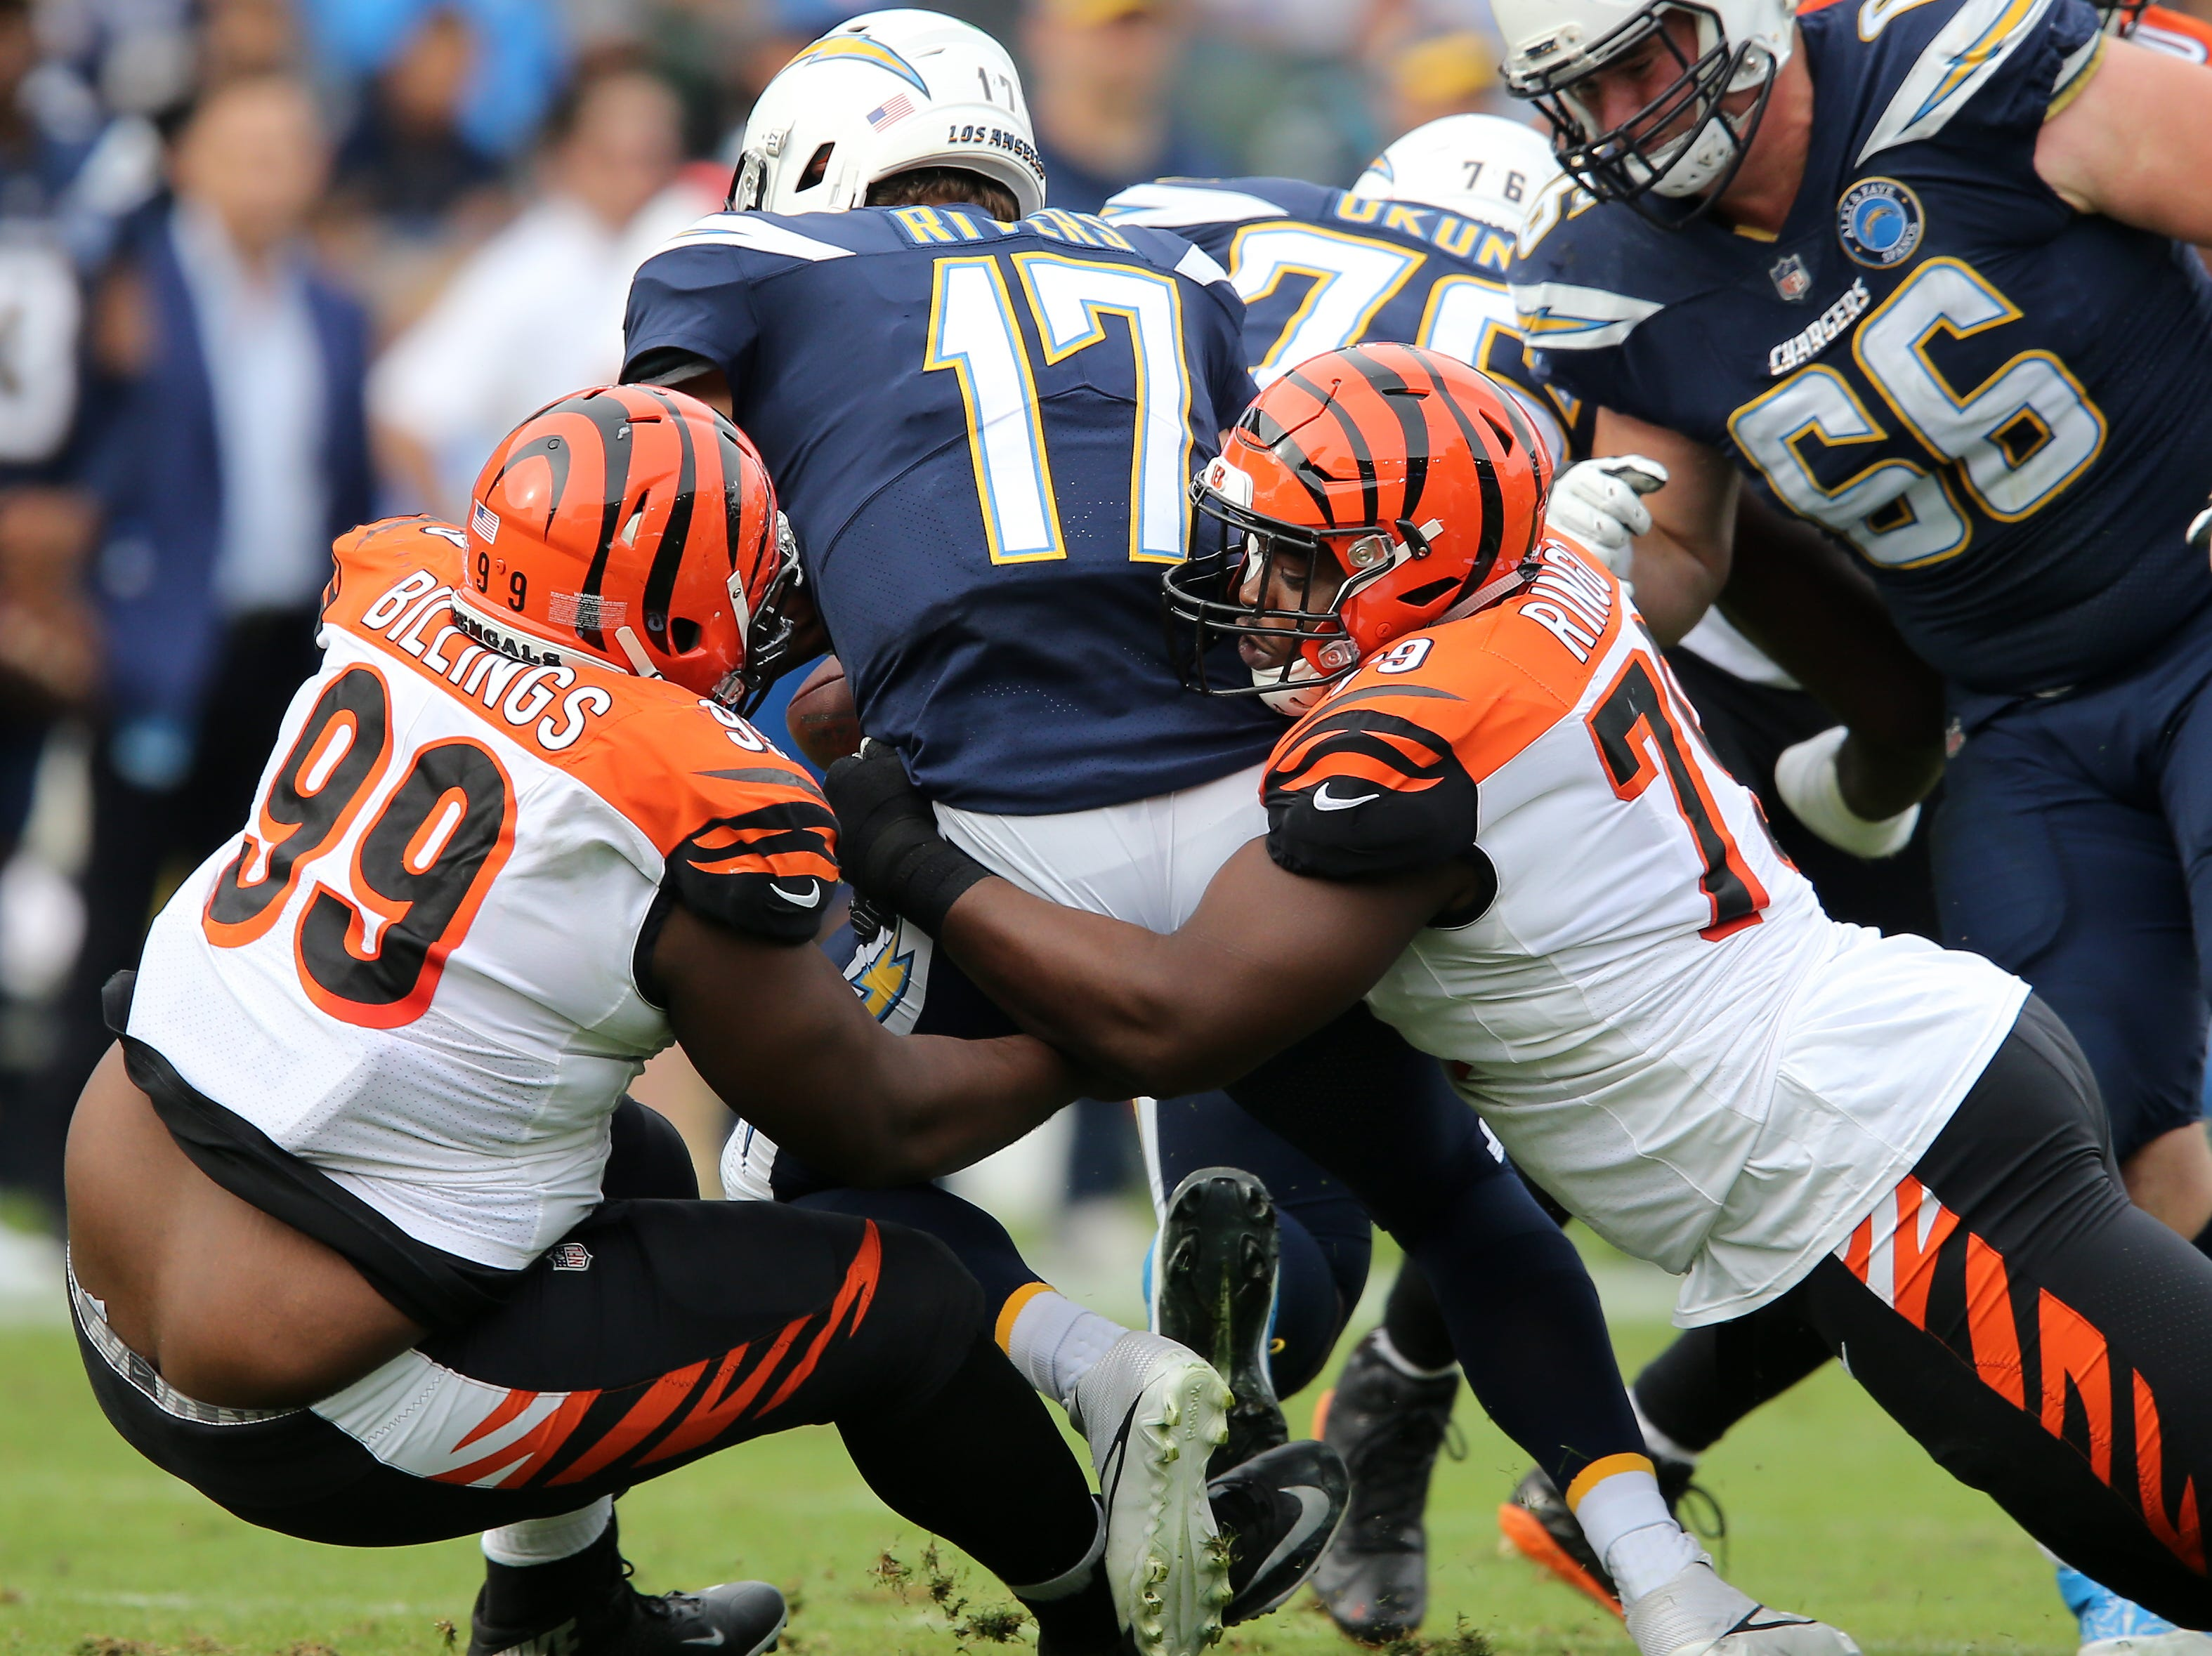 Cincinnati Bengals defensive end Christian Ringo (79) and Cincinnati Bengals defensive tackle Andrew Billings (99) sack Los Angeles Chargers quarterback Philip Rivers (17) in the first quarter of a Week 14 NFL football game, Sunday, Dec. 9, 2018, at StubHub Center in Carson, California.